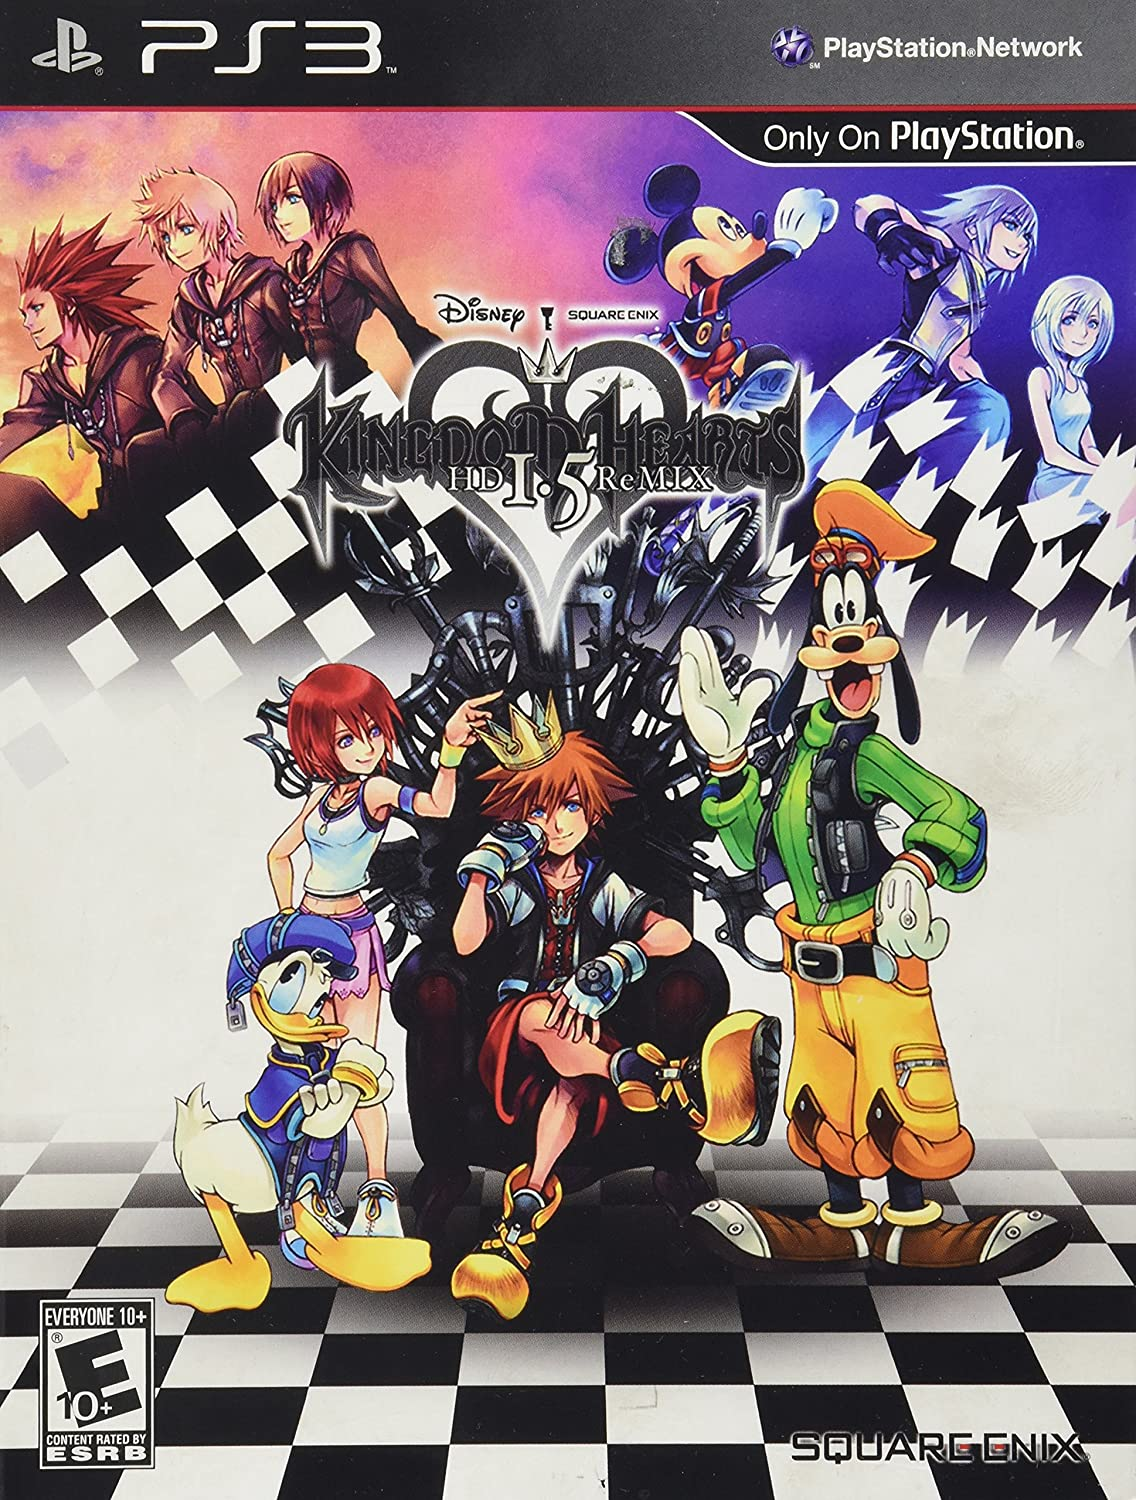 Kingdom Hearts HD 1.5 Remix - PlayStation 3 by Square Enix: Amazon ...